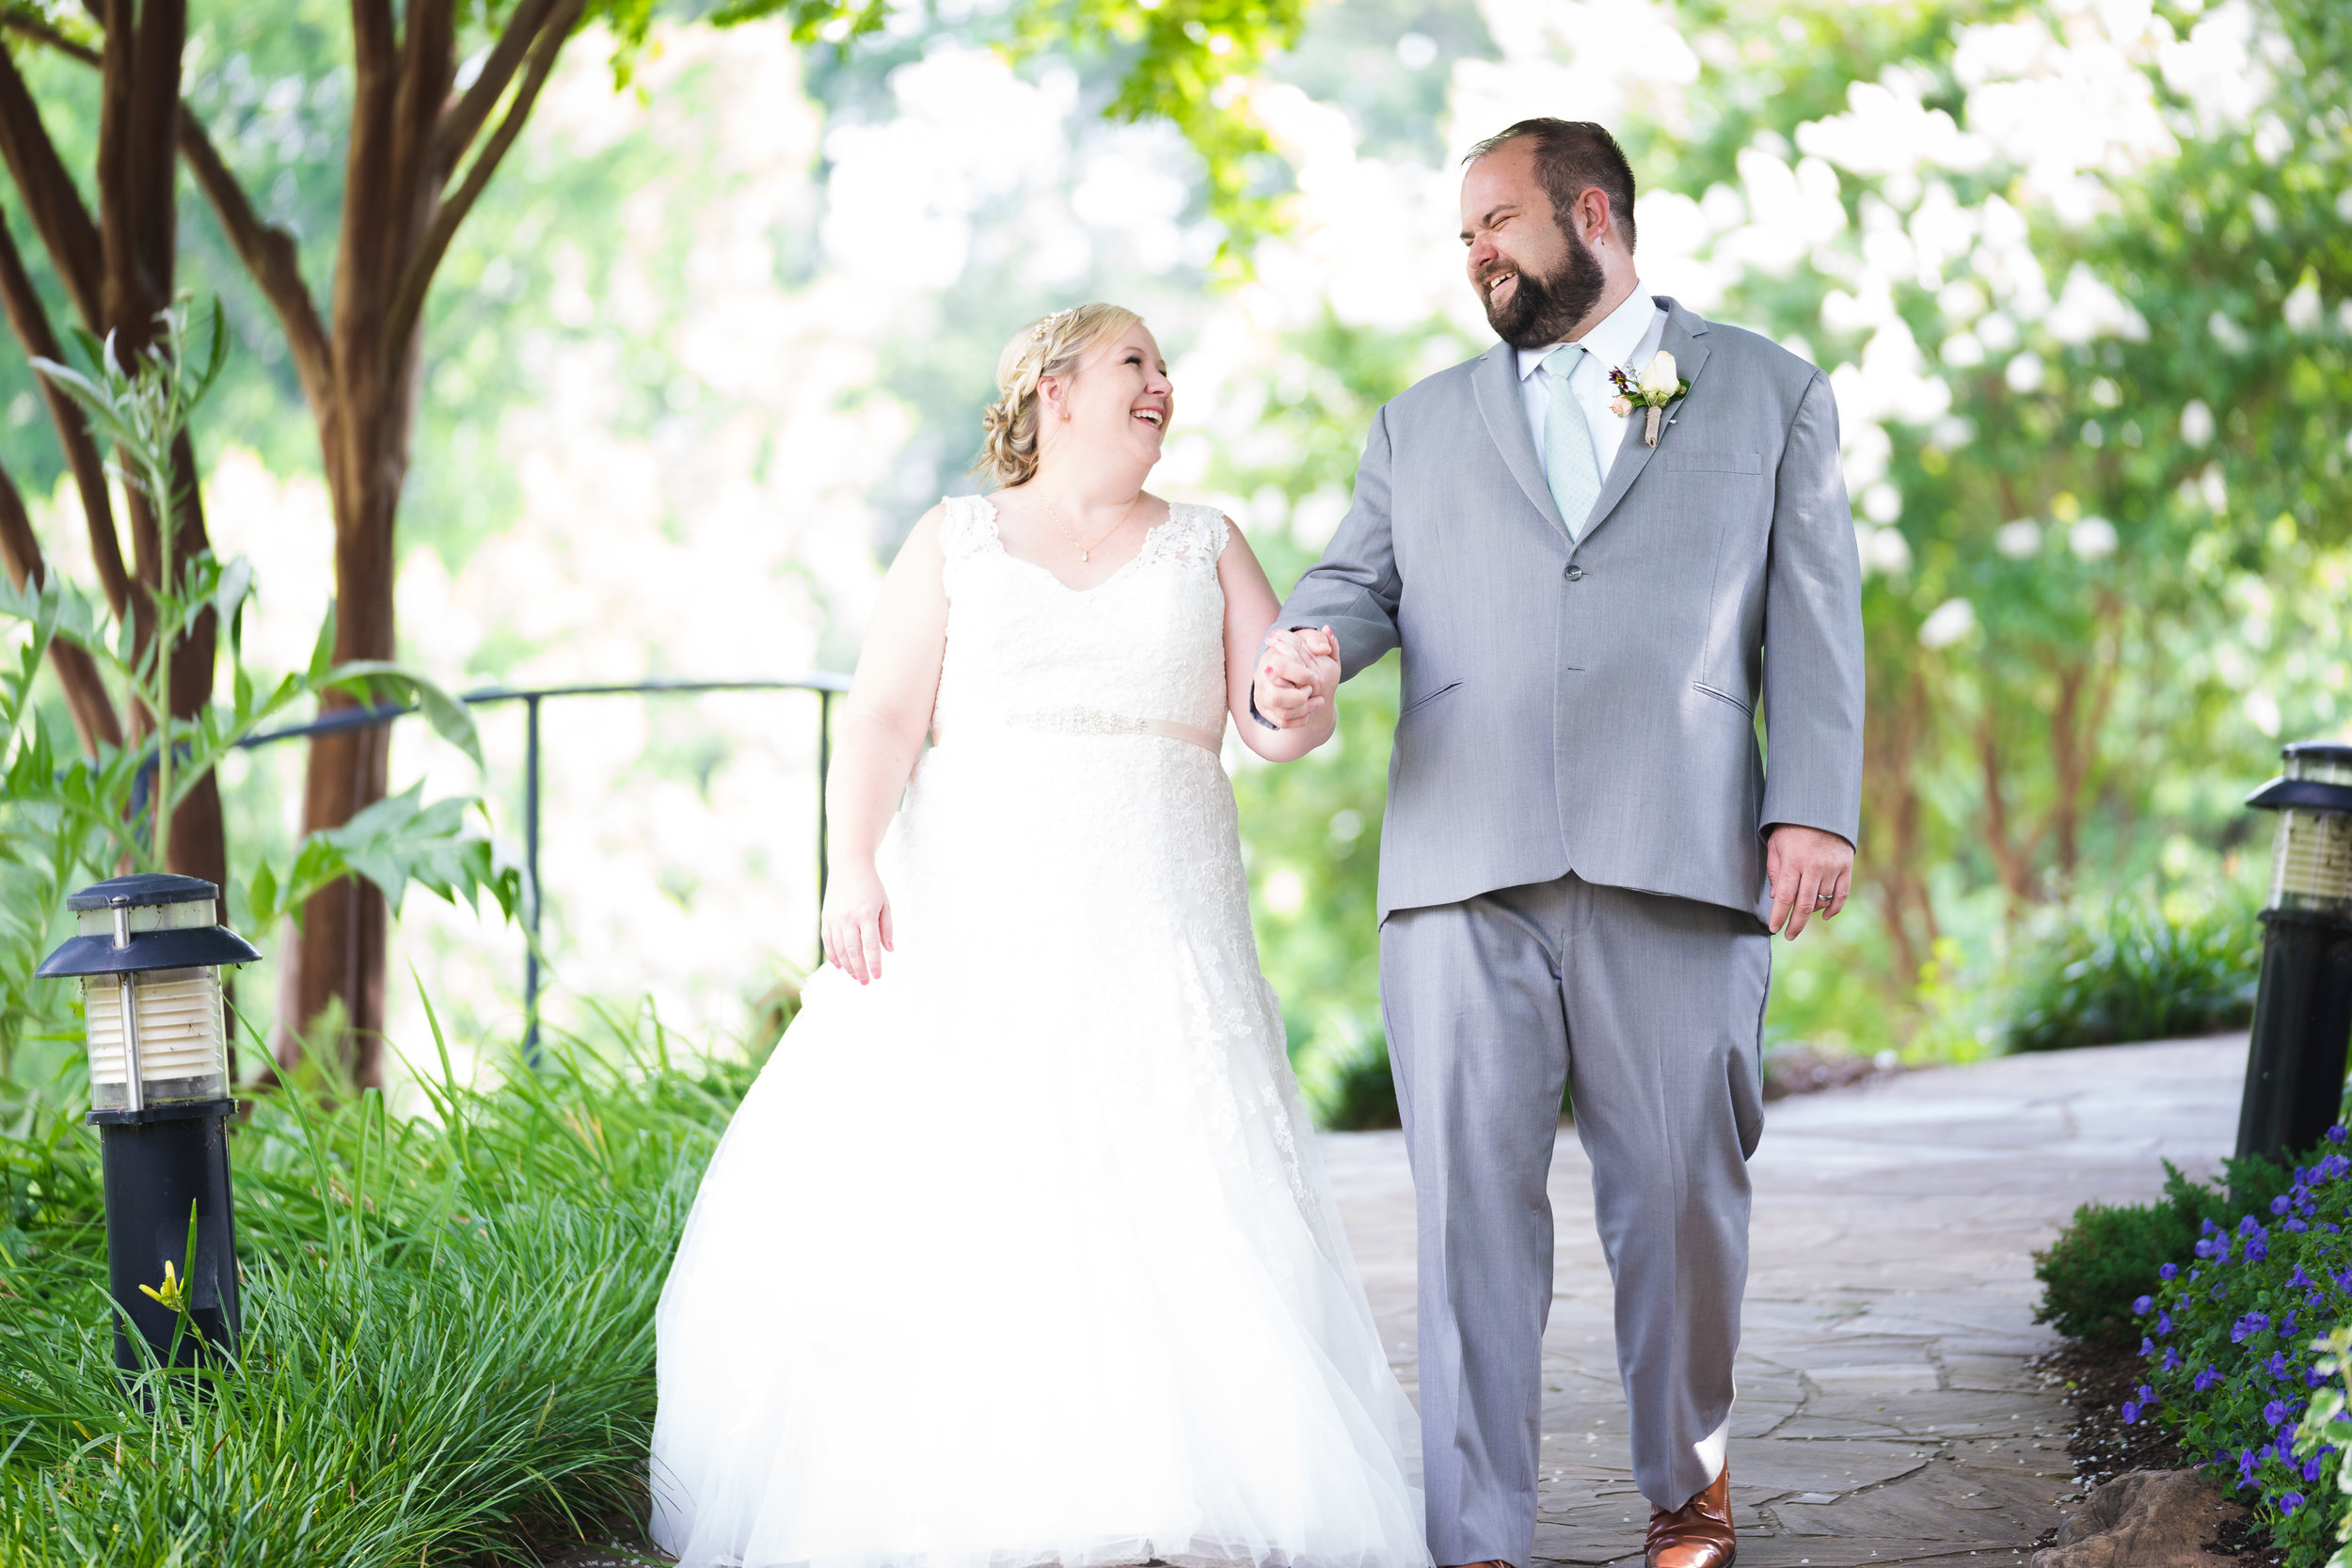 Bride and groom walking | Falls Park Downtown Greenville